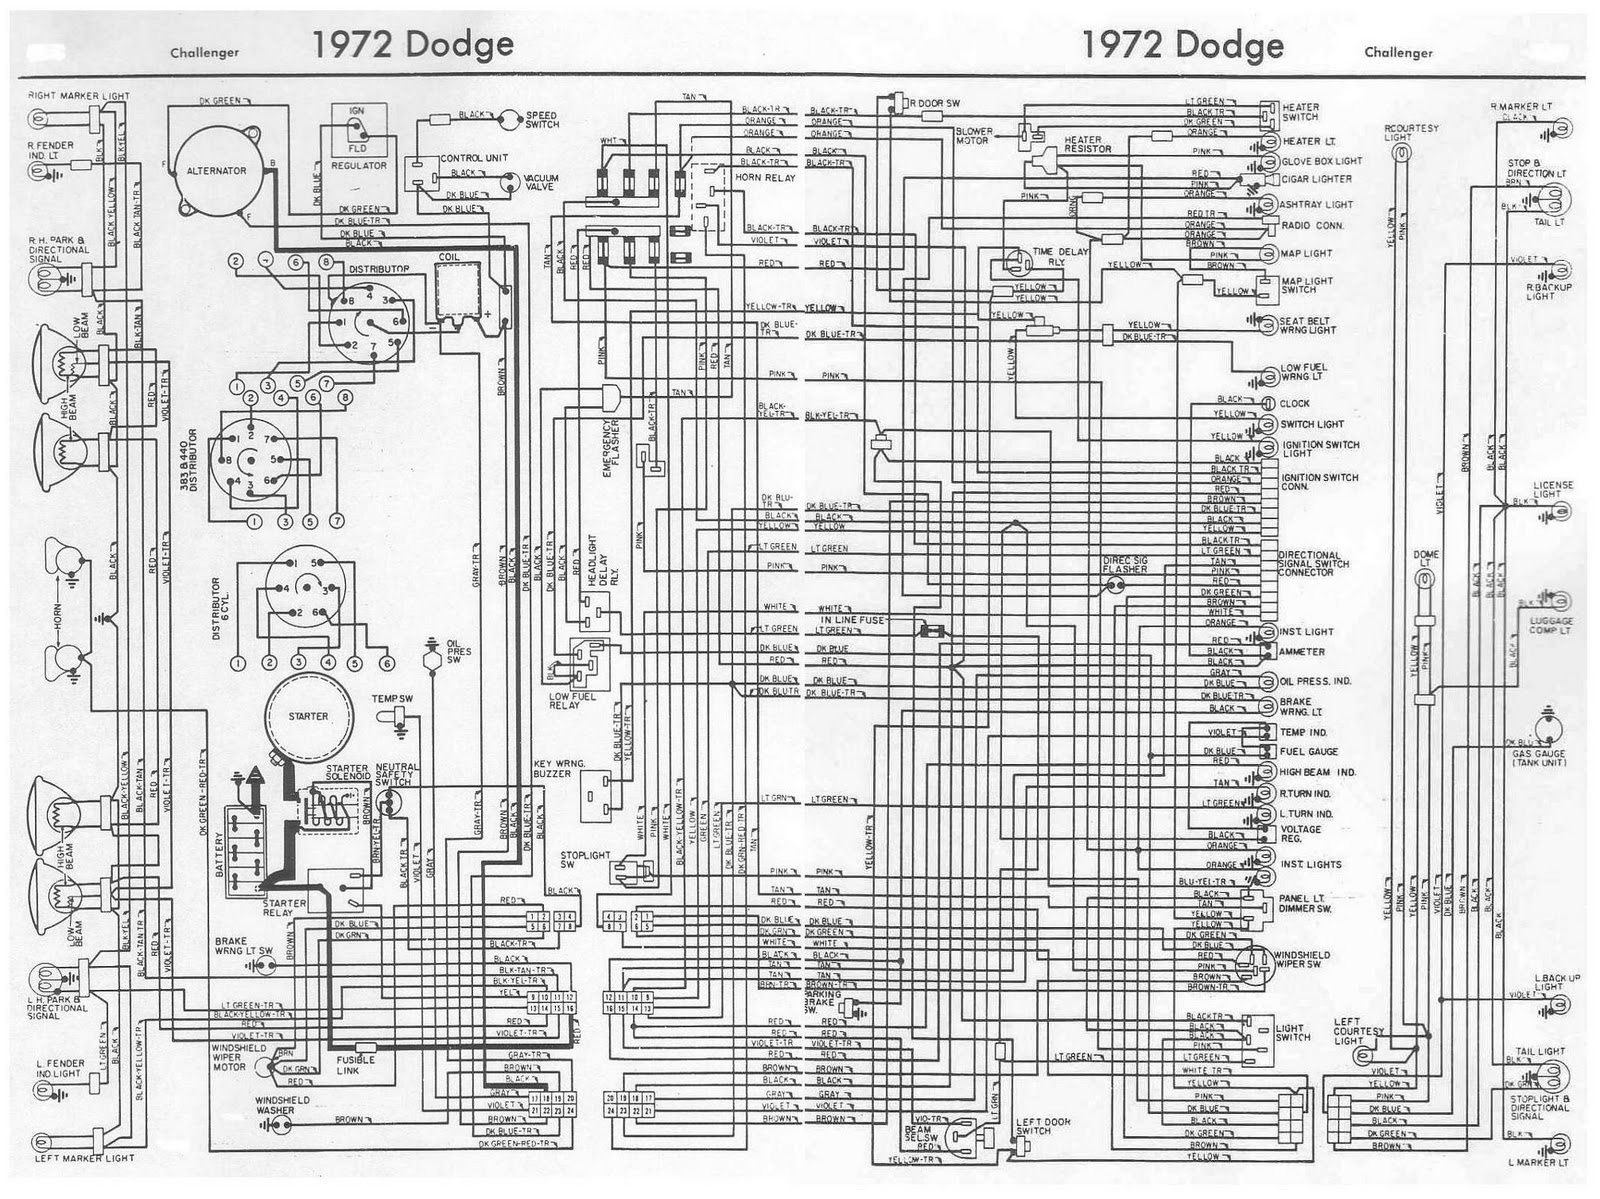 1973 Dodge Challenger Starter Wiring Diagram Electrical 72 Chevy 1974 Wire Center U2022 Fuel System